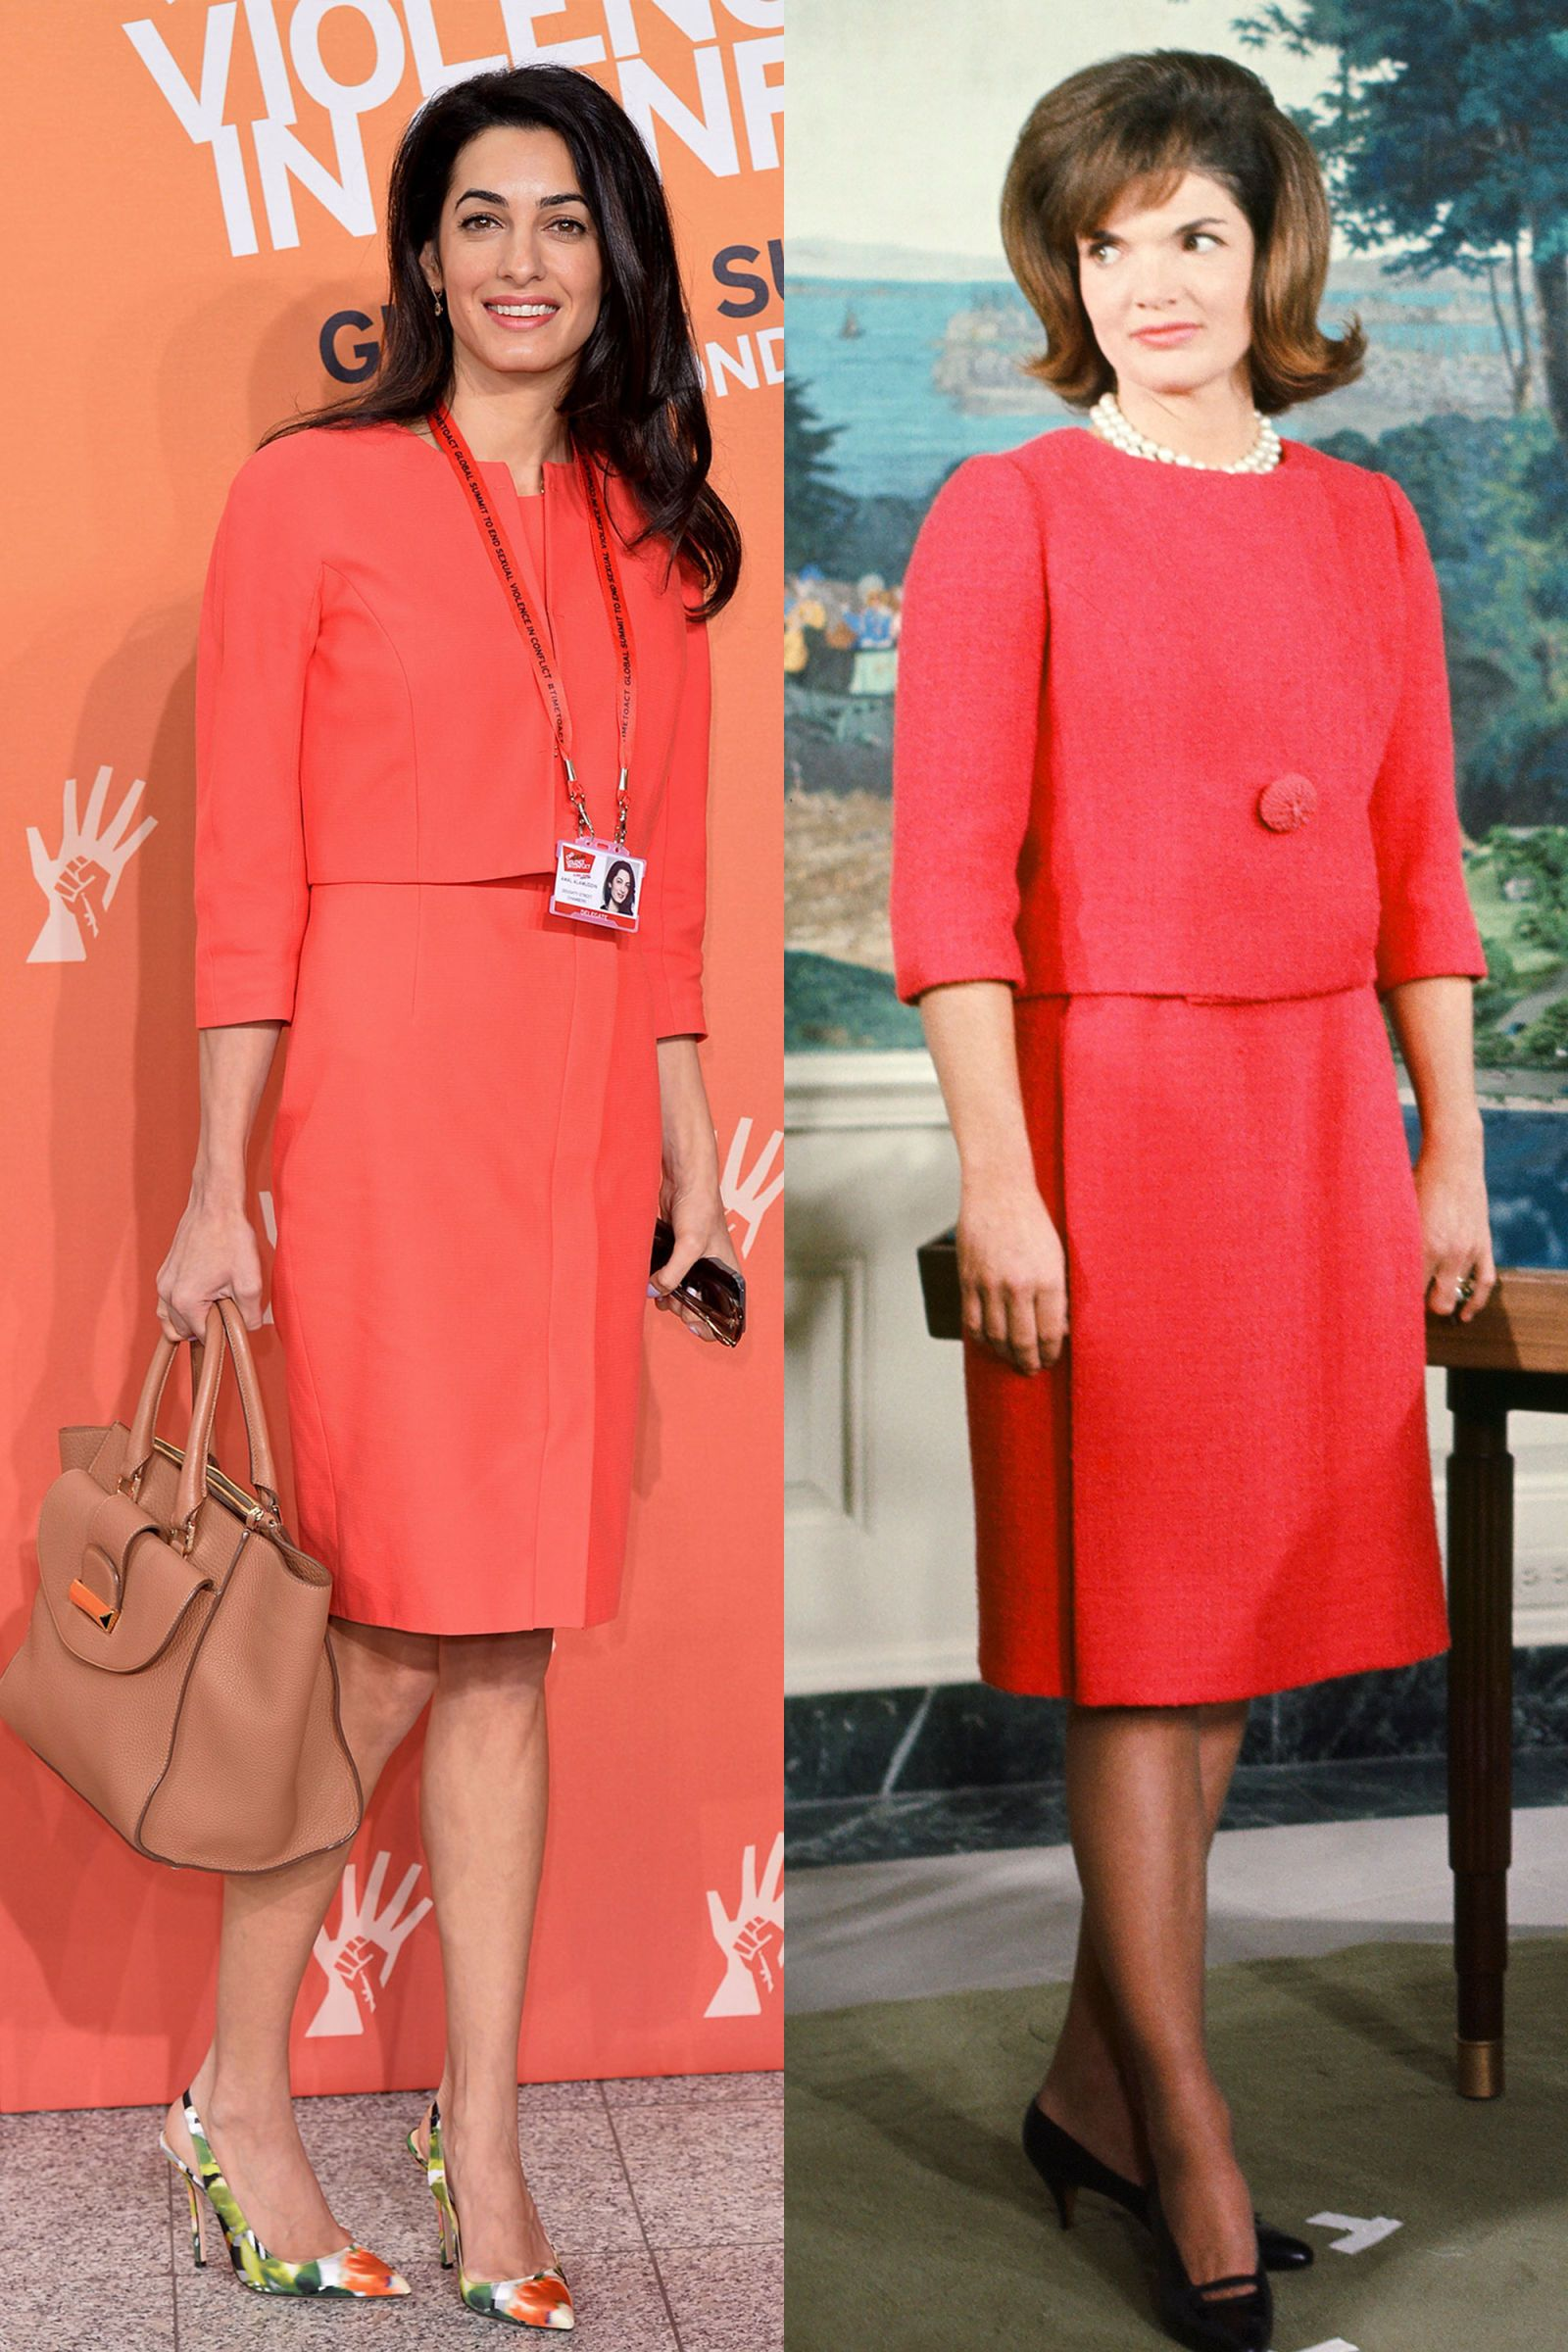 14 Times Amal Clooney Channeled Jackie Kennedy's Style